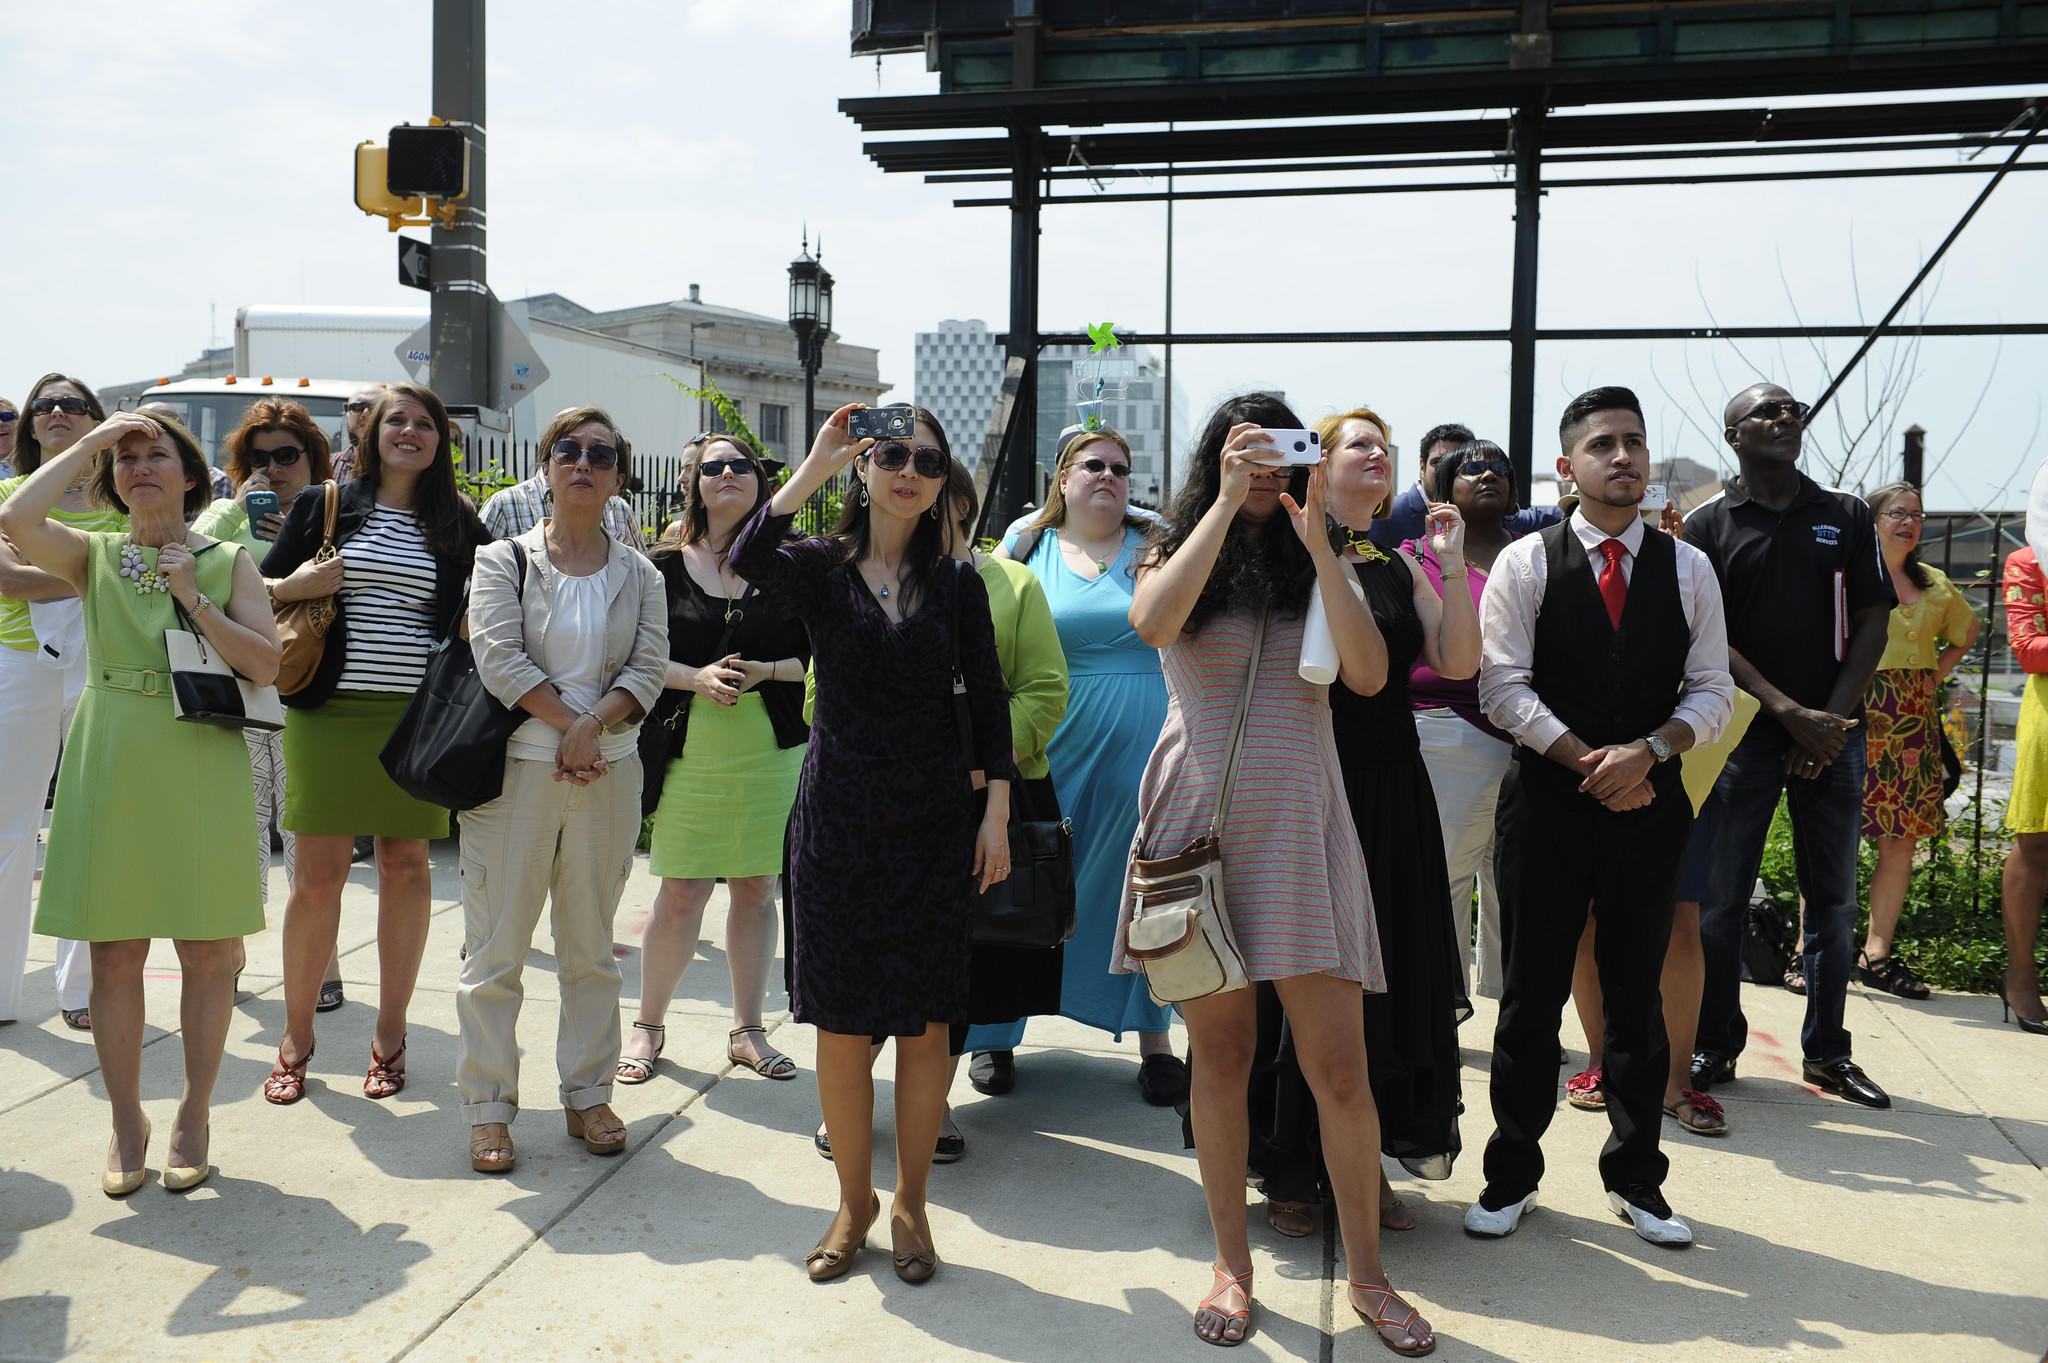 People watch aerial artists from DNA Theater perform at a press conference announcing events for the upcoming Artscape 2014 event which will take place in July.